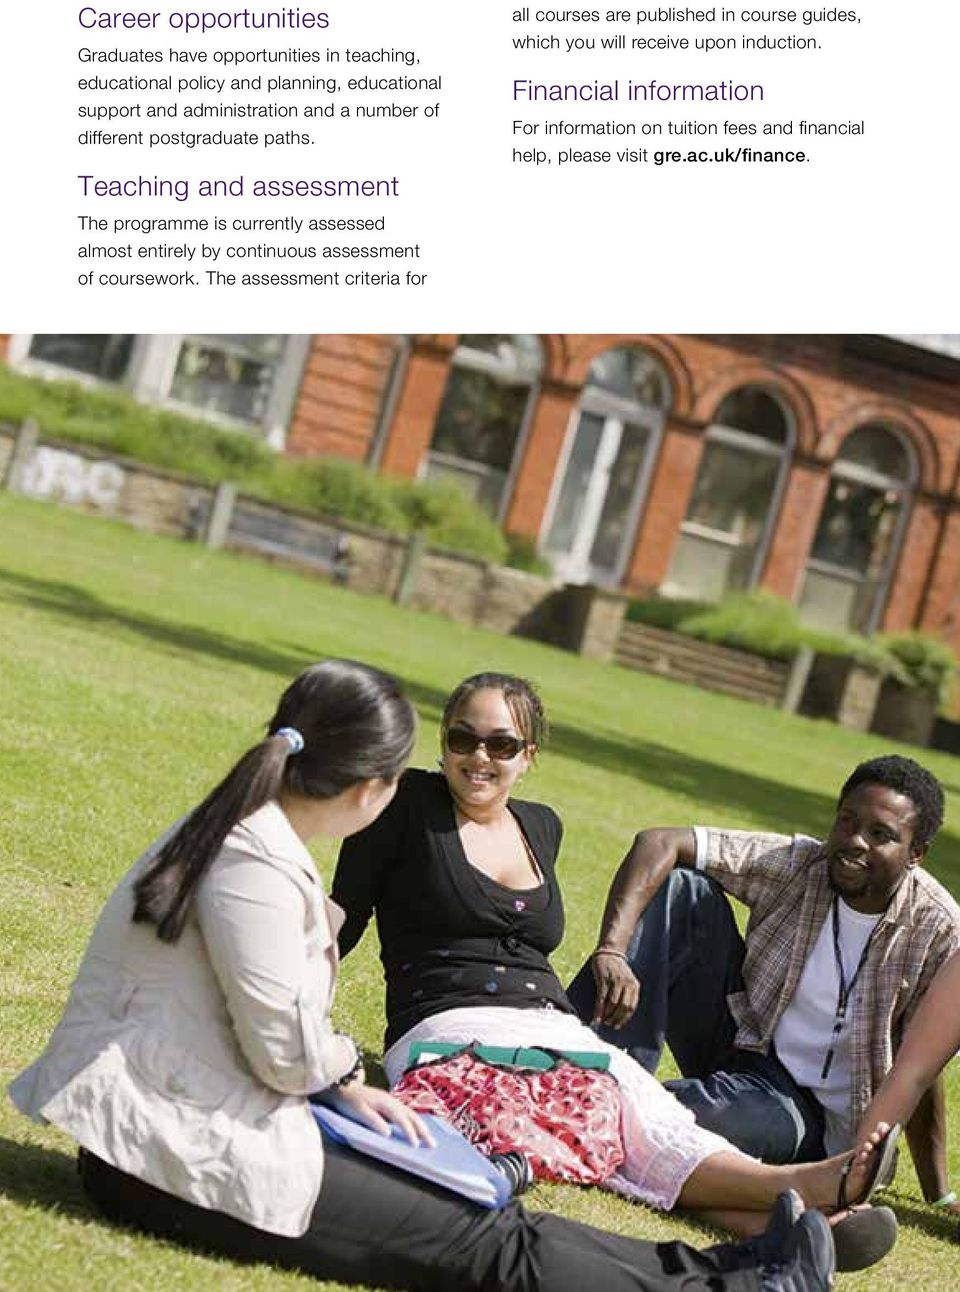 Teaching and assessment The programme is currently assessed almost entirely by continuous assessment of coursework.